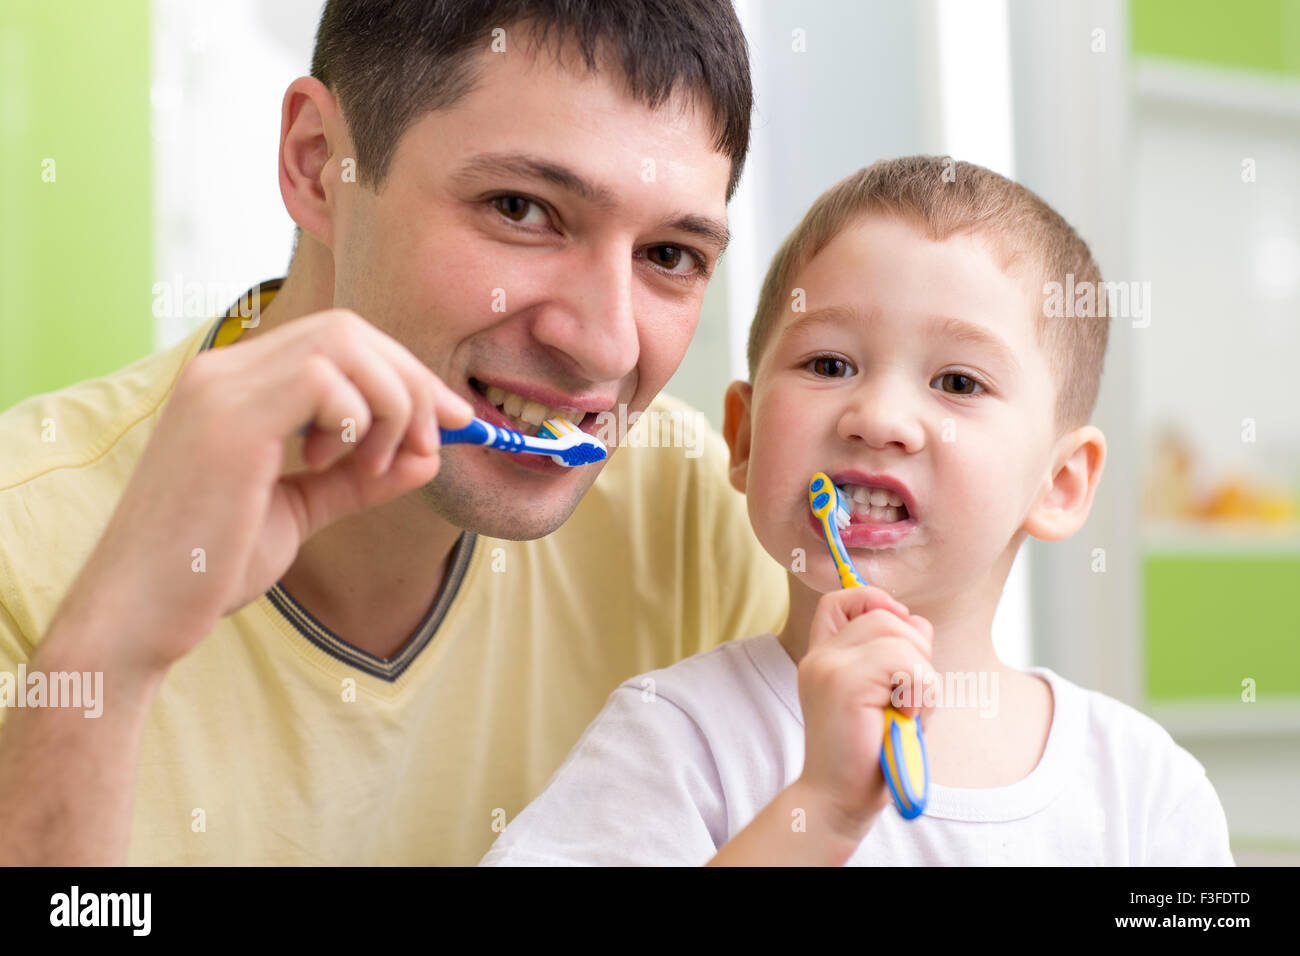 child and his father brushing teeth in bathroom - Stock Image